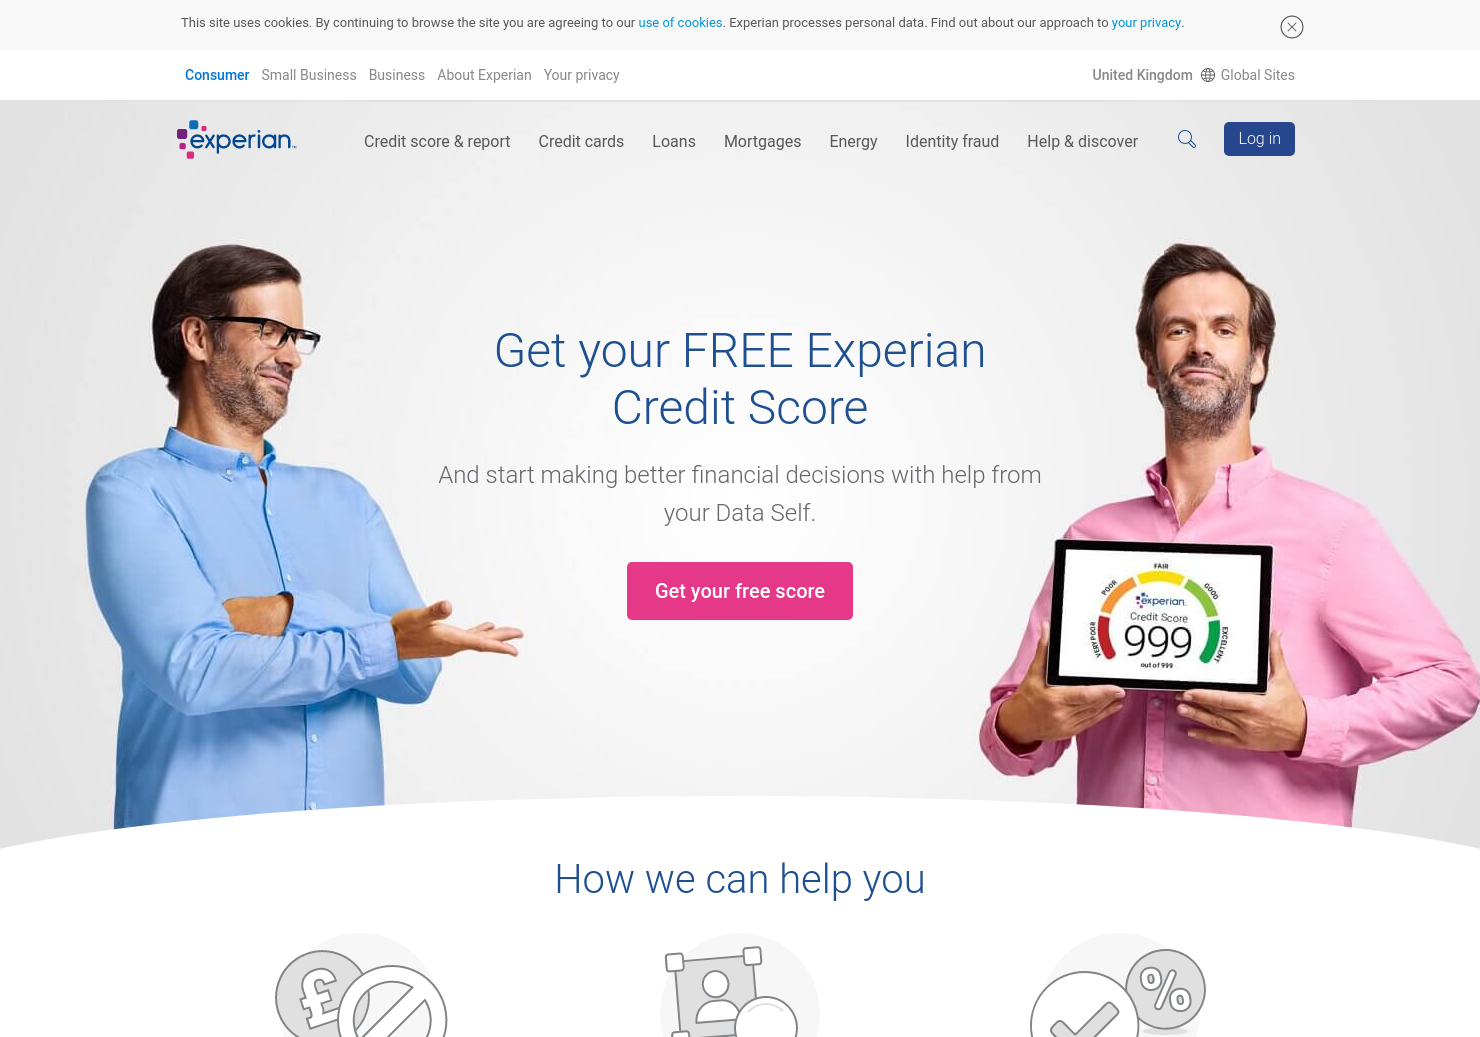 Experian Home Page